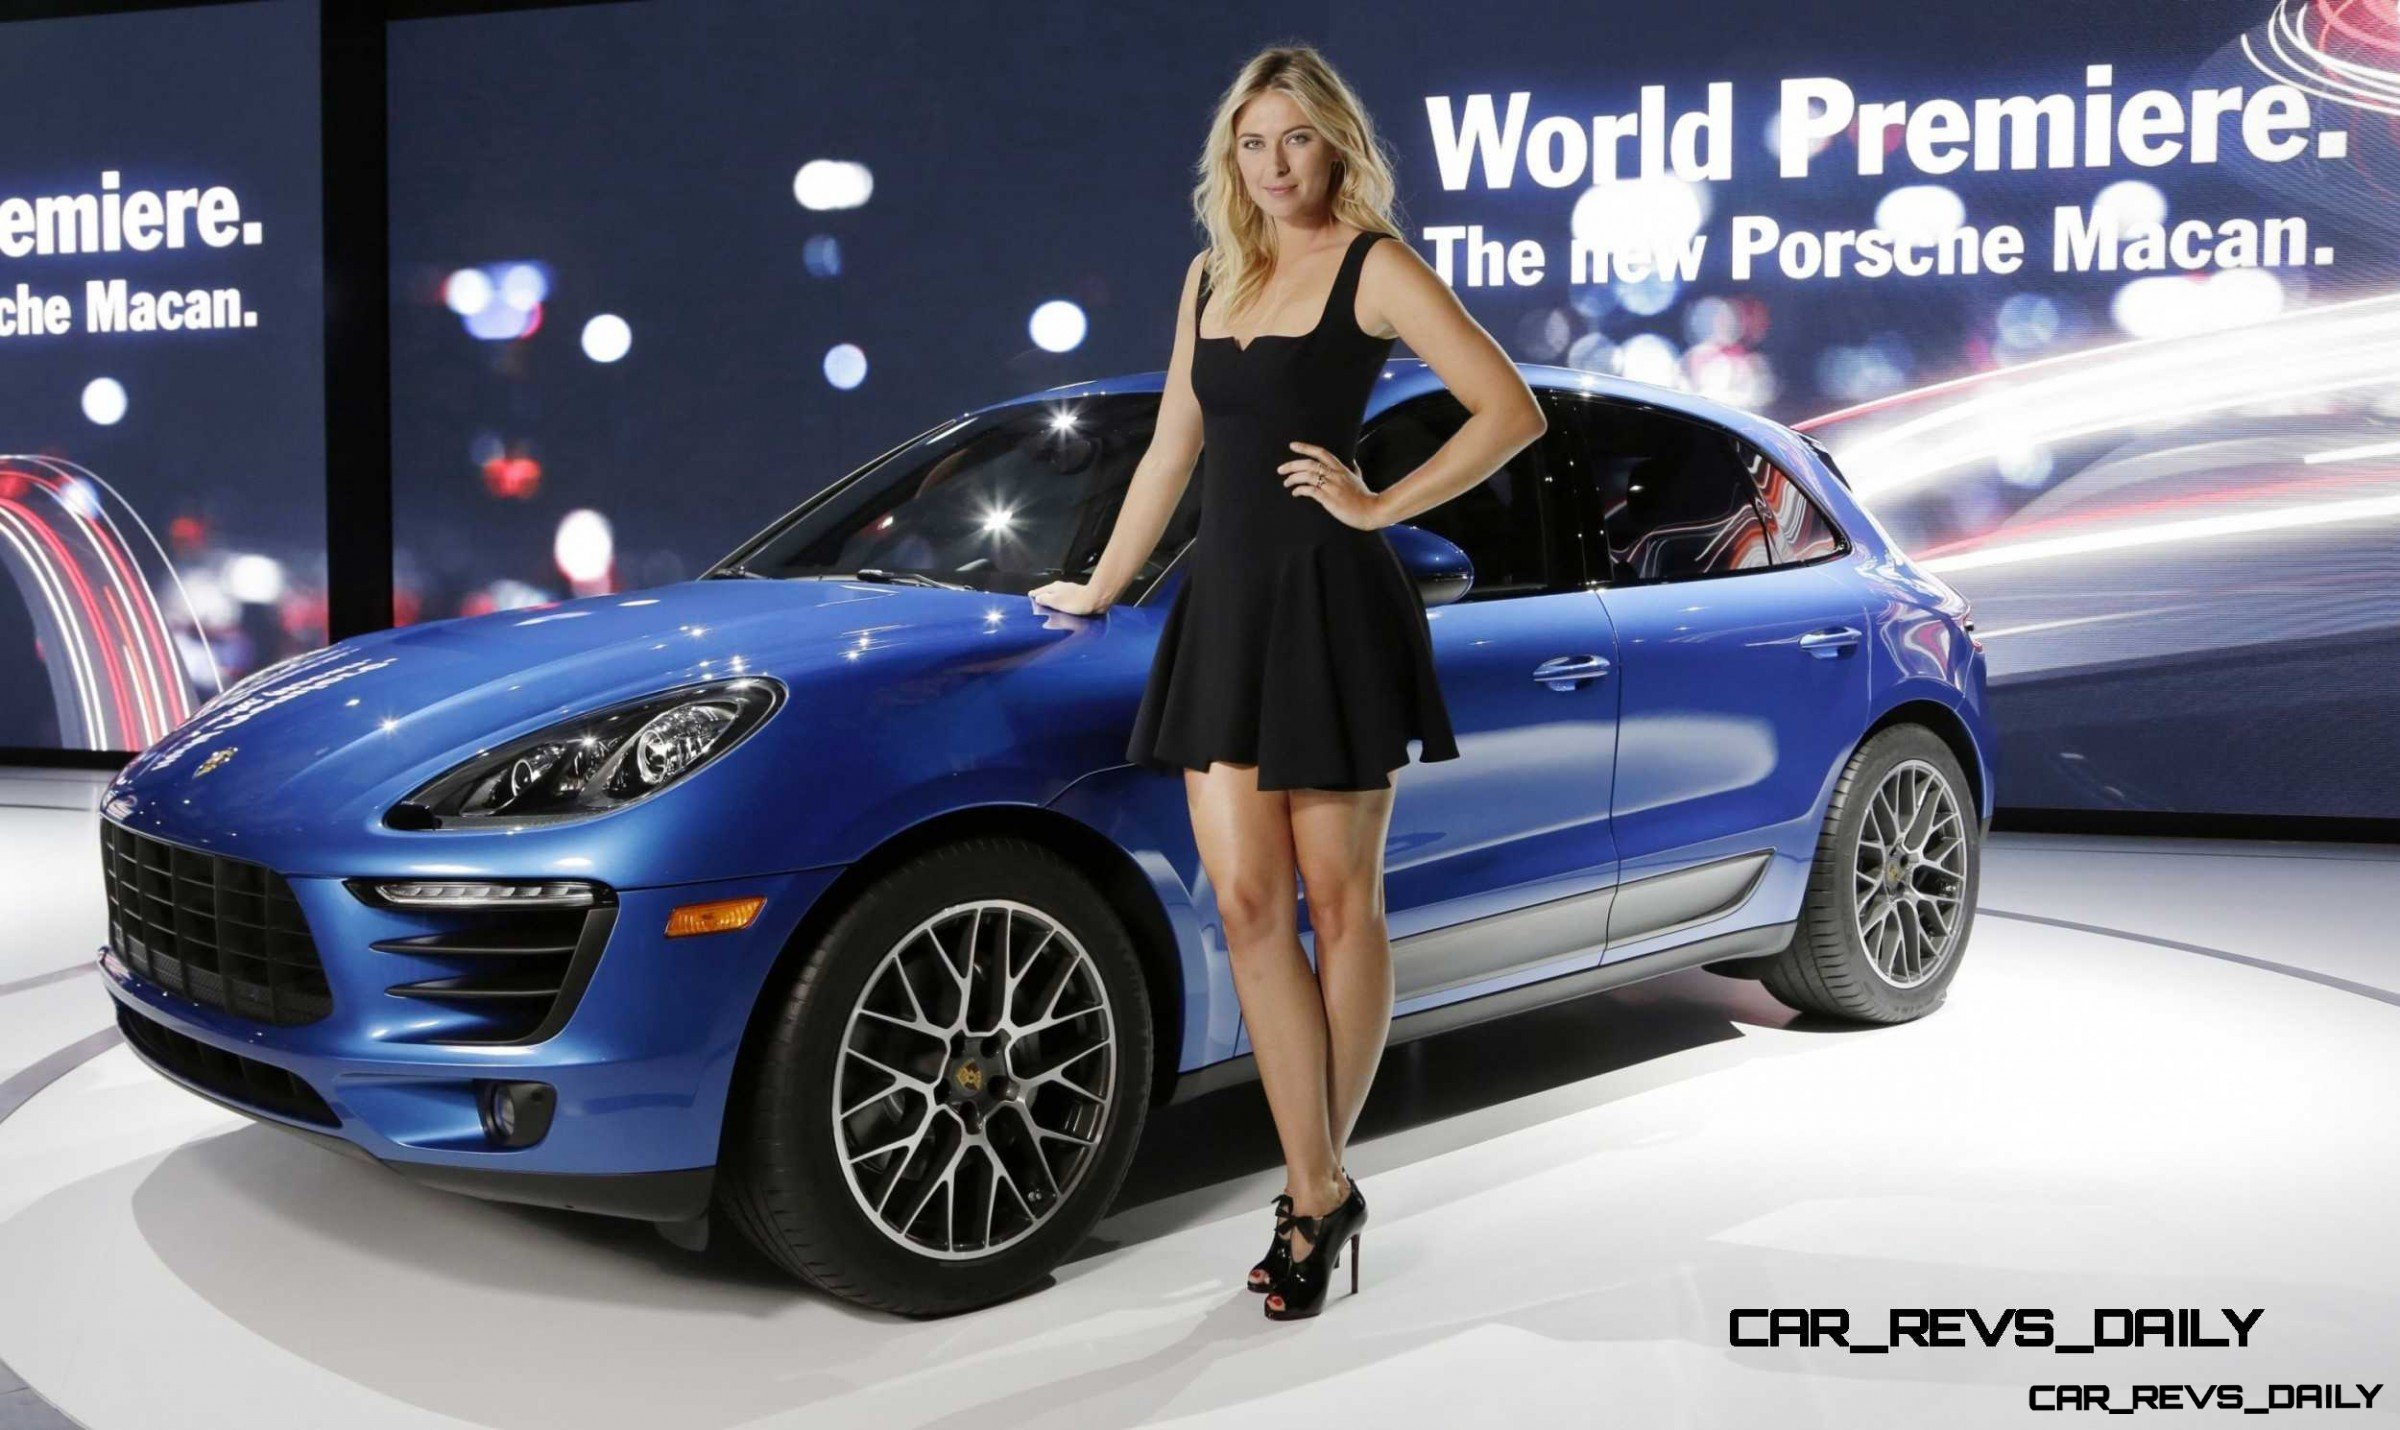 2014 Porsche Macan Turbo and Macan S - Official Debut Photos19